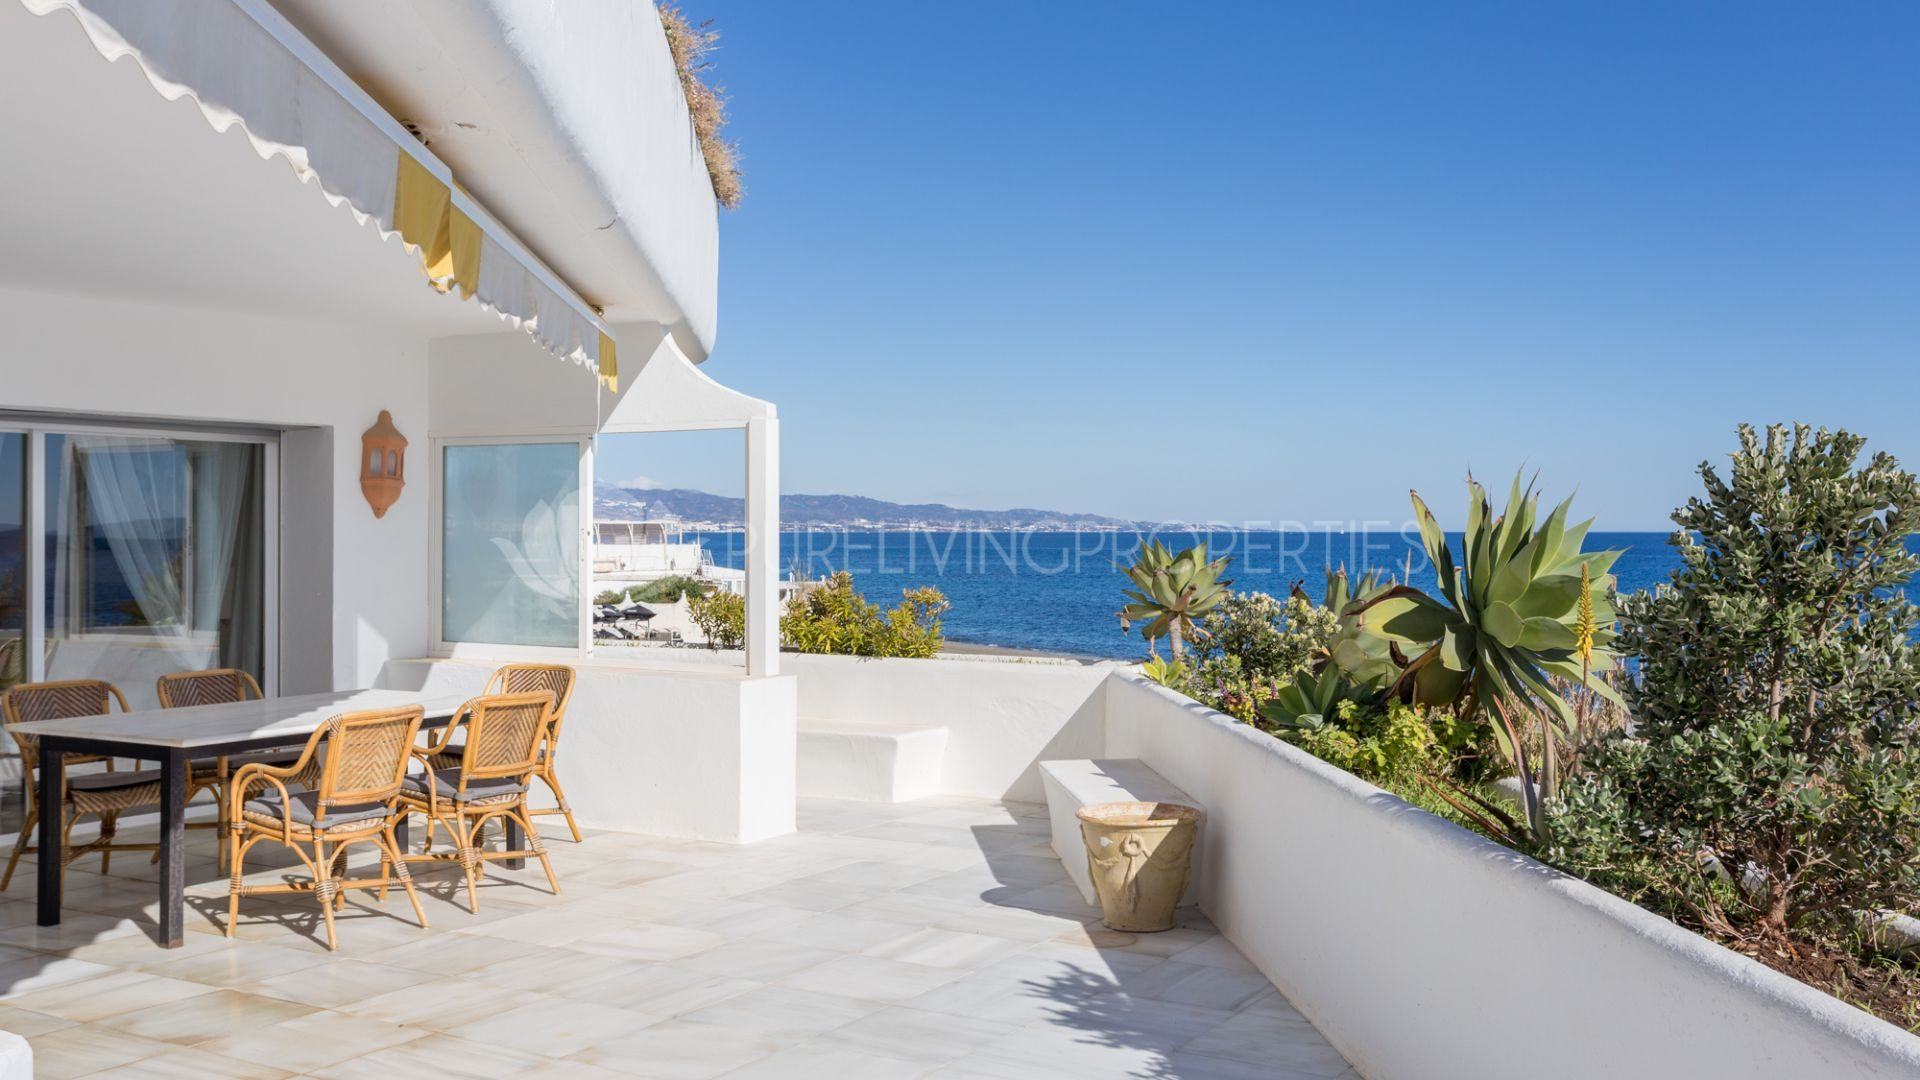 The best holiday rentals in Marbella